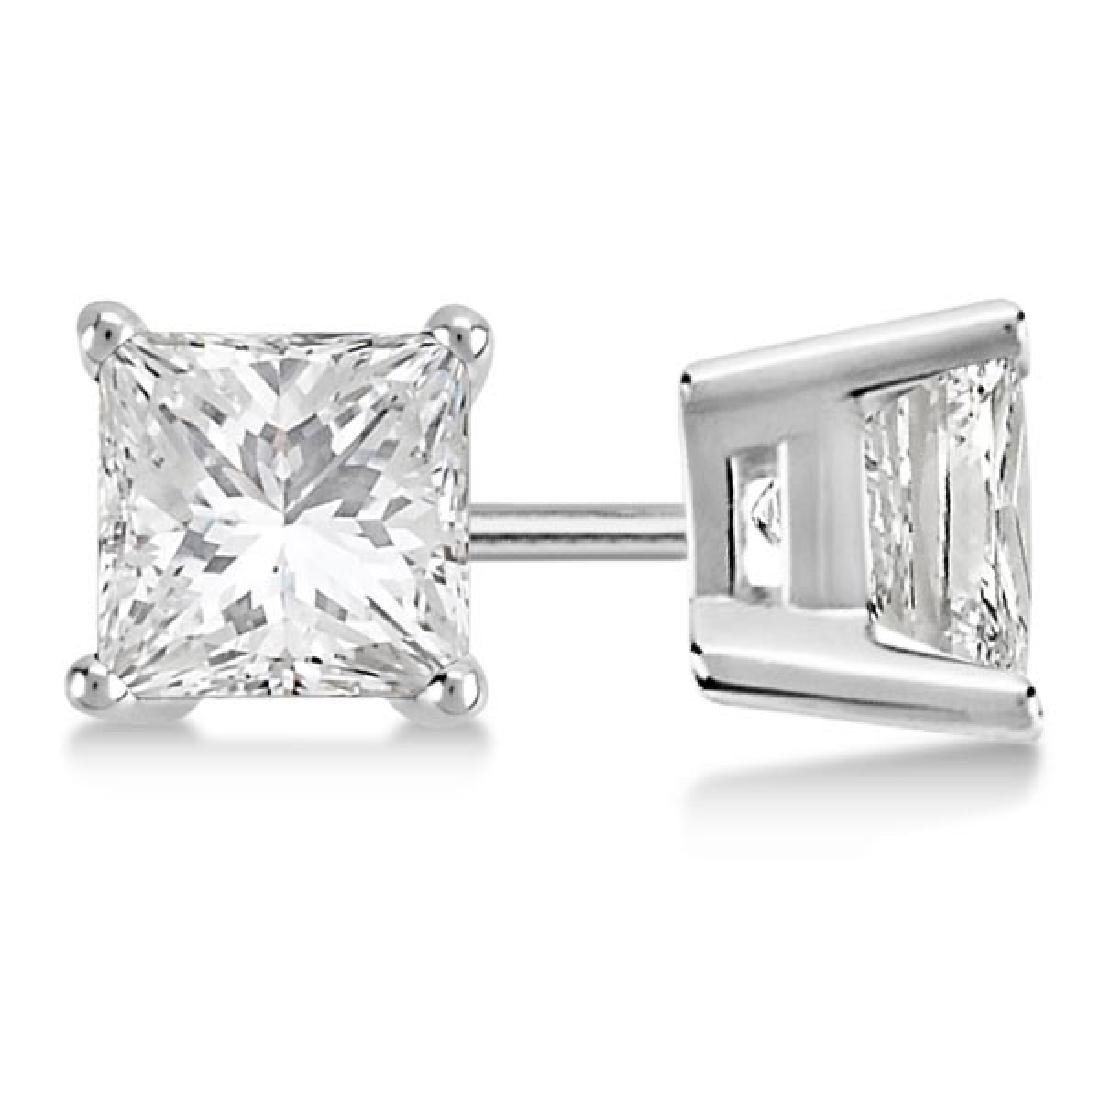 Certified 1.01 CTW Princess Diamond Stud Earrings E/SI1